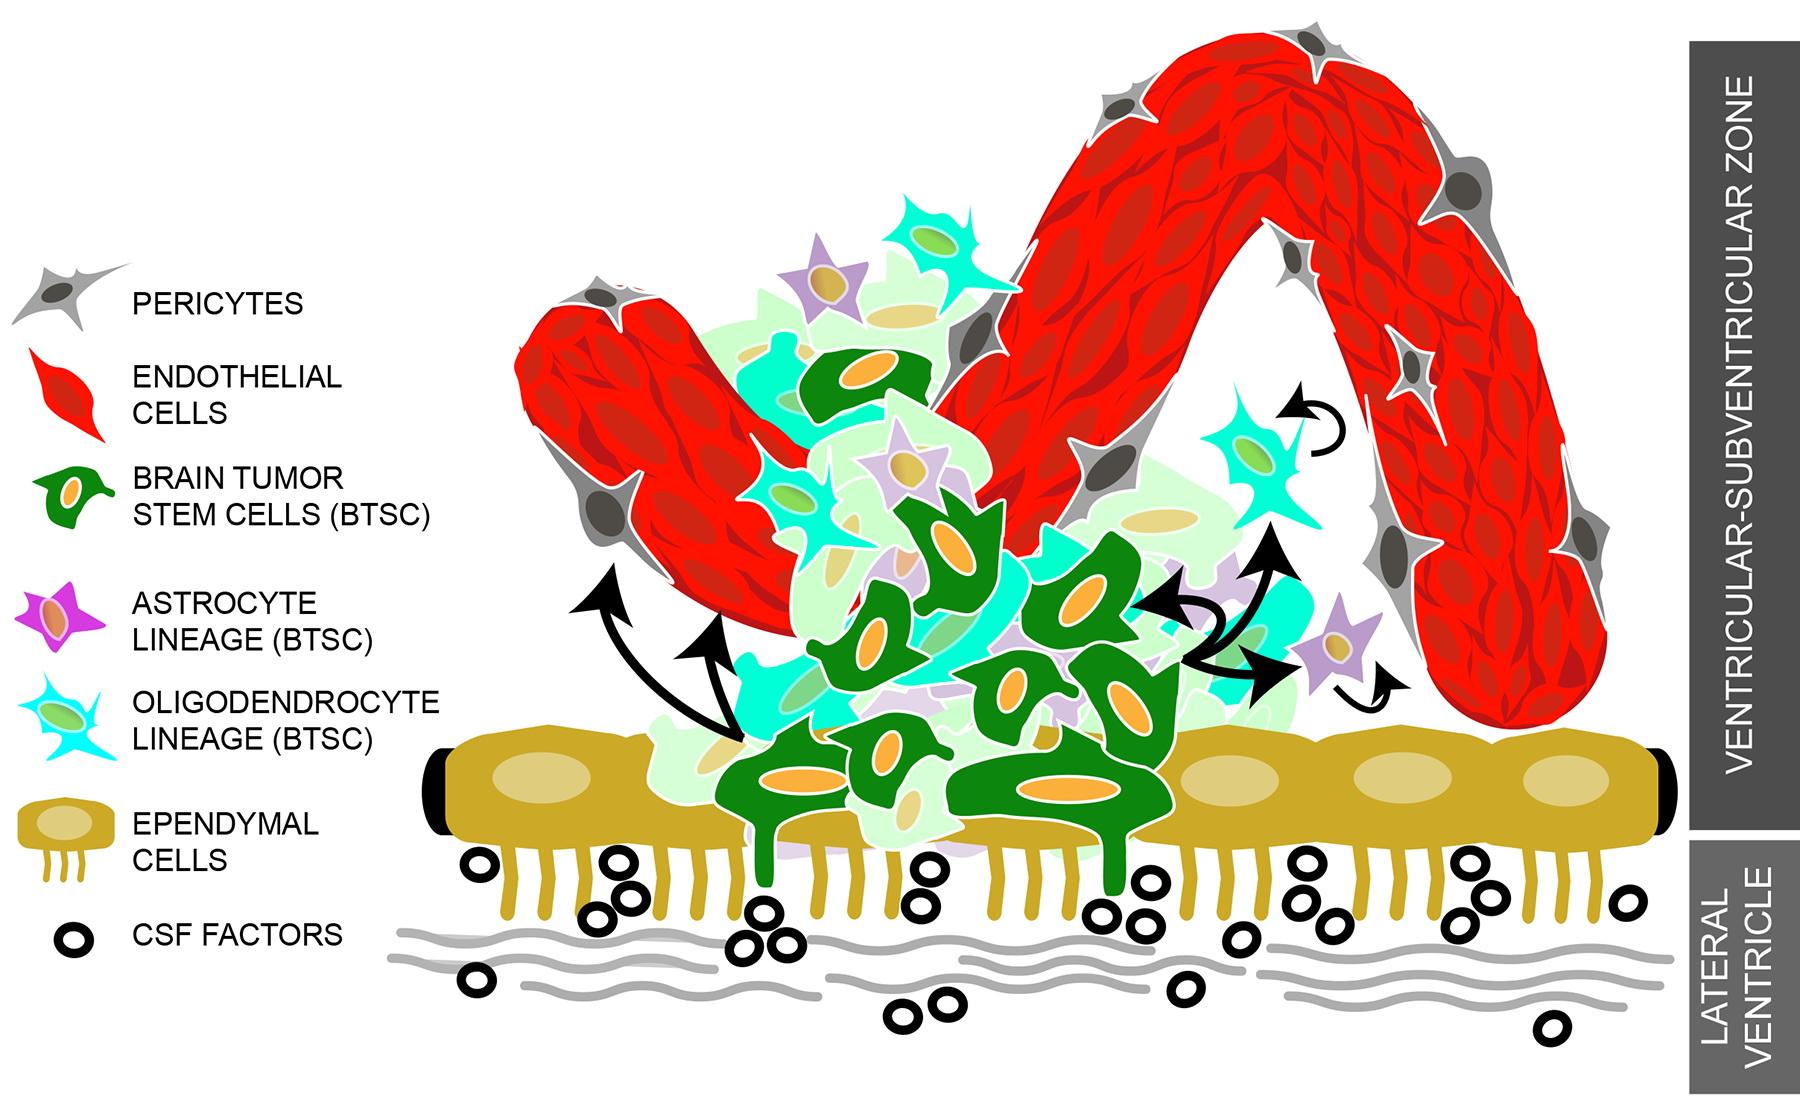 Figure 2: Schematic Diagram of the Tumorigenic Niche Brain tumor stem cells (BTSC) interact closely with niche components that include factors released by the endothelial cells that make up the enhanced tumor vasculature, pericytes, and other tumor cell types. In cases where BTSCs are in close contact with the lateral ventricles, these cells may also be receptive to the same diffusible factors present in the CSF. The result of these interactions could have similar effects on the behavior of BTSCs, as it does on normal NSCs, such as the enhancement of BTSCs to self-renew and generate lineage-specific tumor cells (including the ability to generate endothelial cells) resulting in the aberrant expansion and invasiveness of a highly heterogeneous brain tumor.